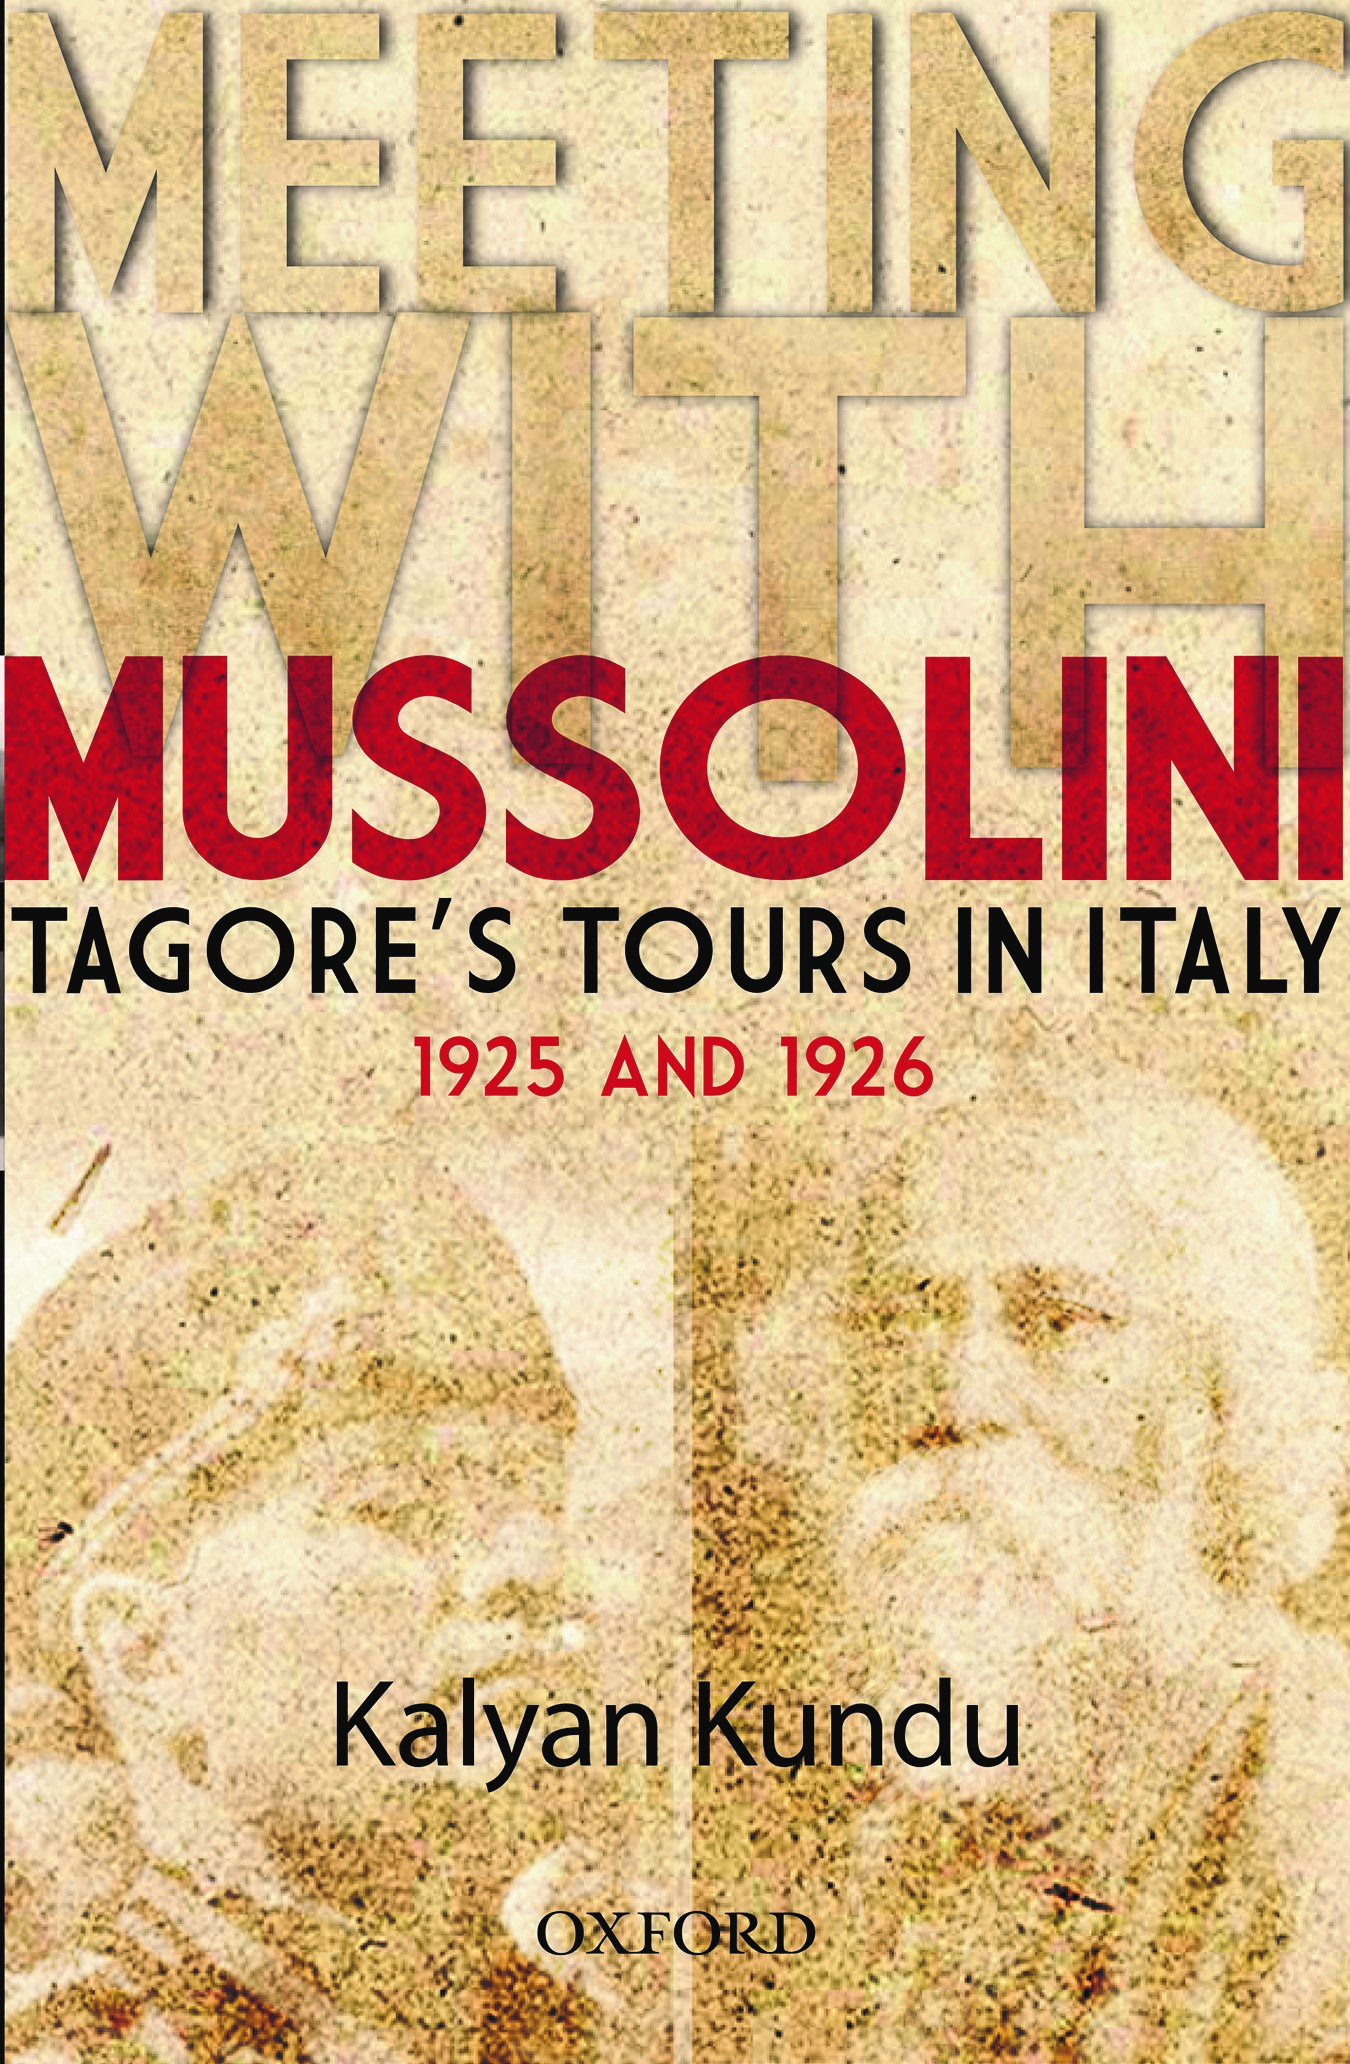 Meeting with Mussolini : Tagore's Tours in Italy 1925 & 1926